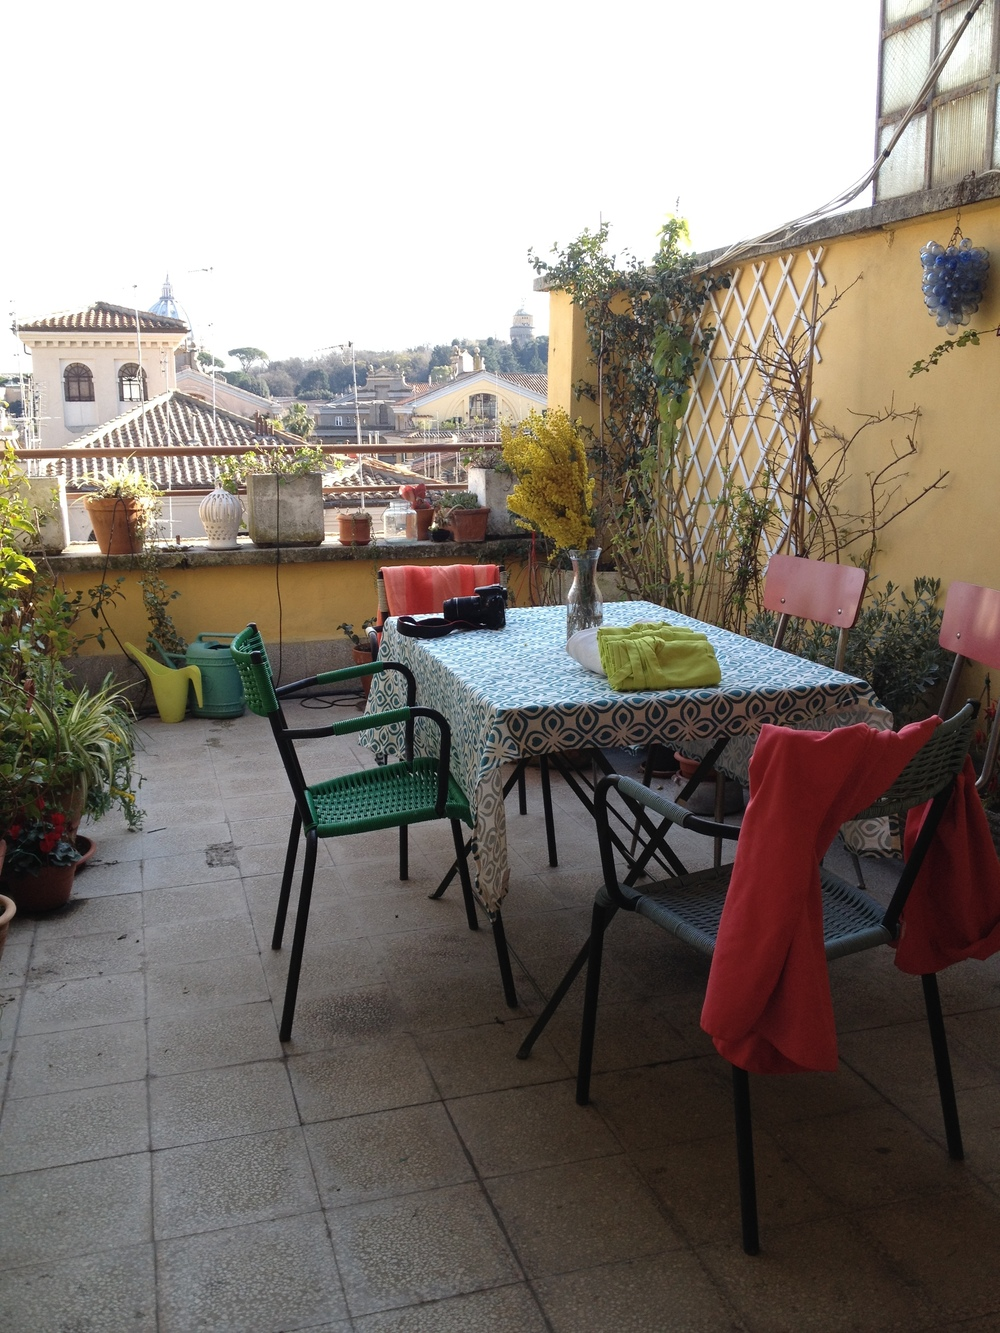 Our Eclectic Kitchen with a Terrace looking at the Vatican